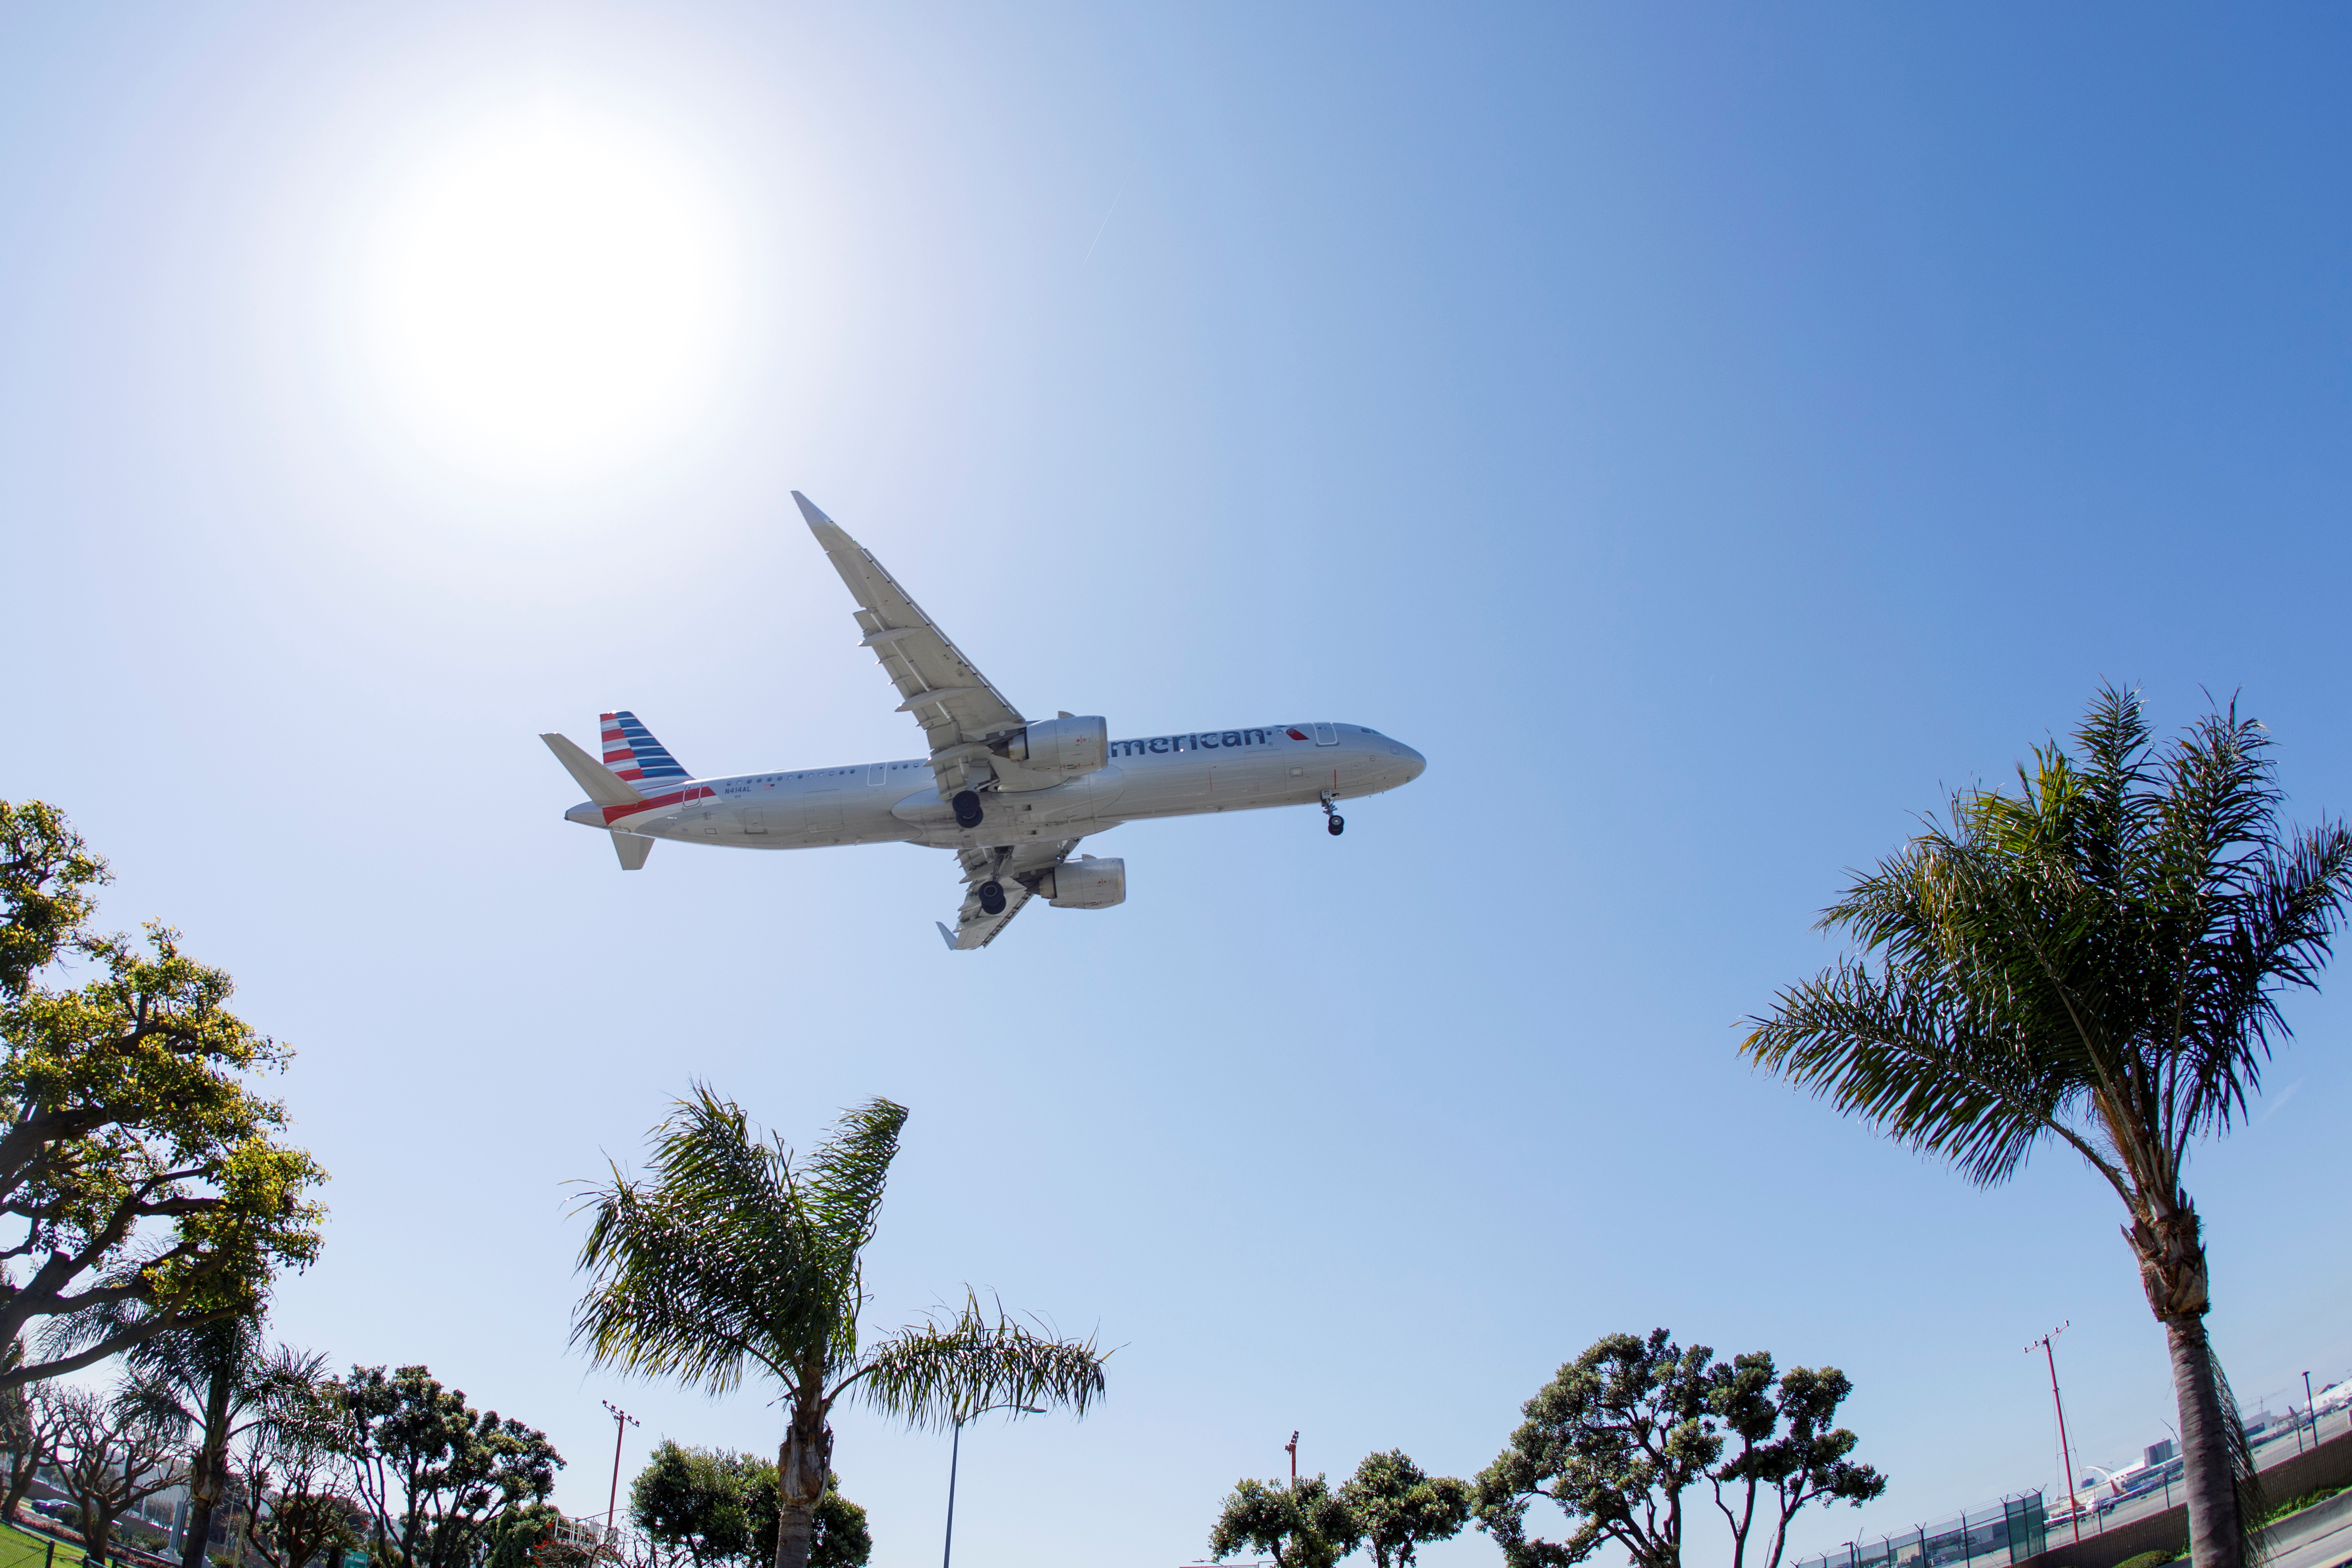 An American Airlines passenger jet approaches to land at LAX during the outbreak of the coronavirus disease (COVID-19) in Los Angeles, California, U.S., April 7, 2021. REUTERS/Mike Blake